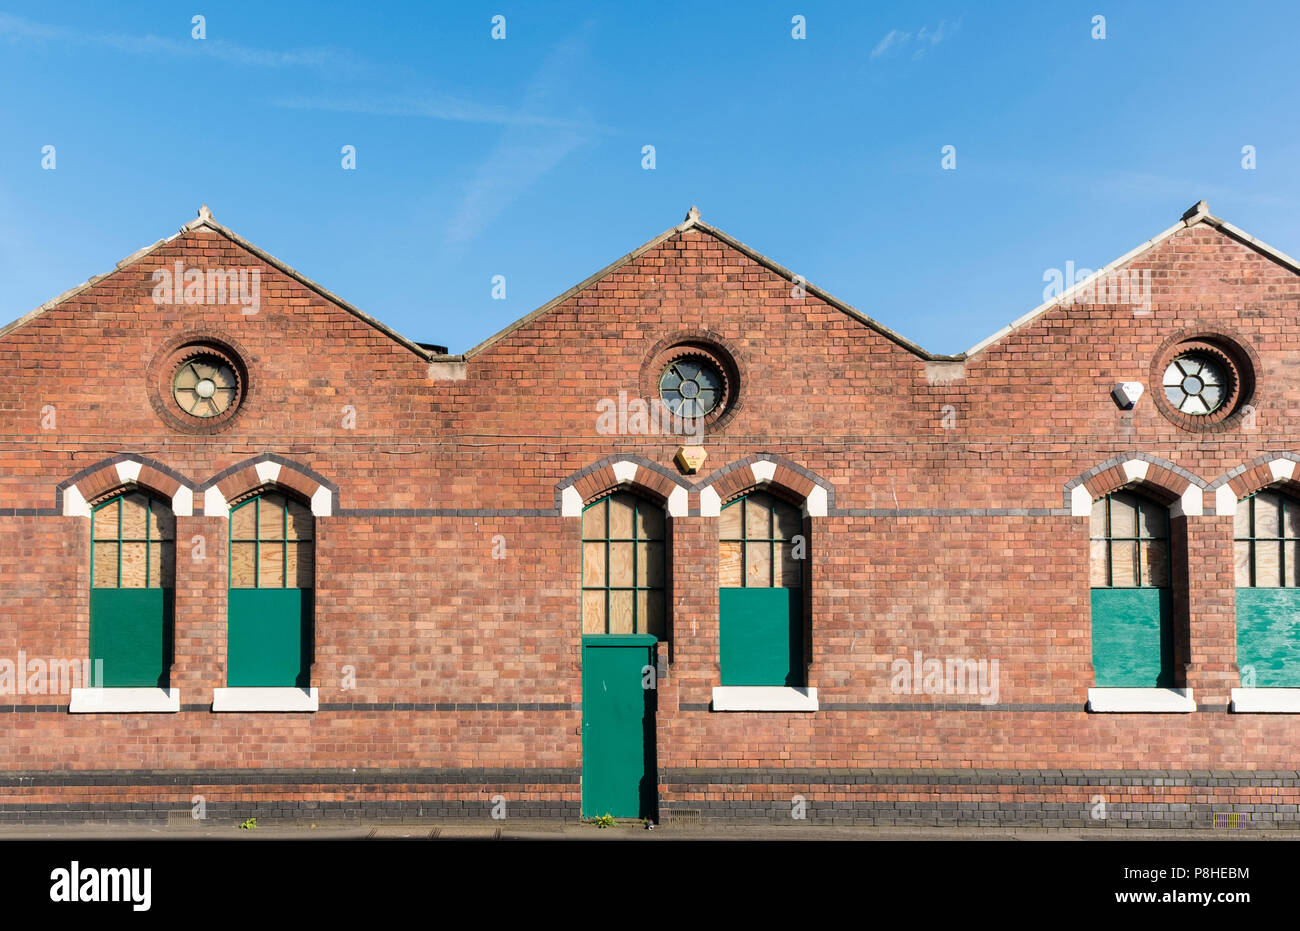 Old carpet making factory and warehouses, Kidderminster, Worcestershire, England, Europe